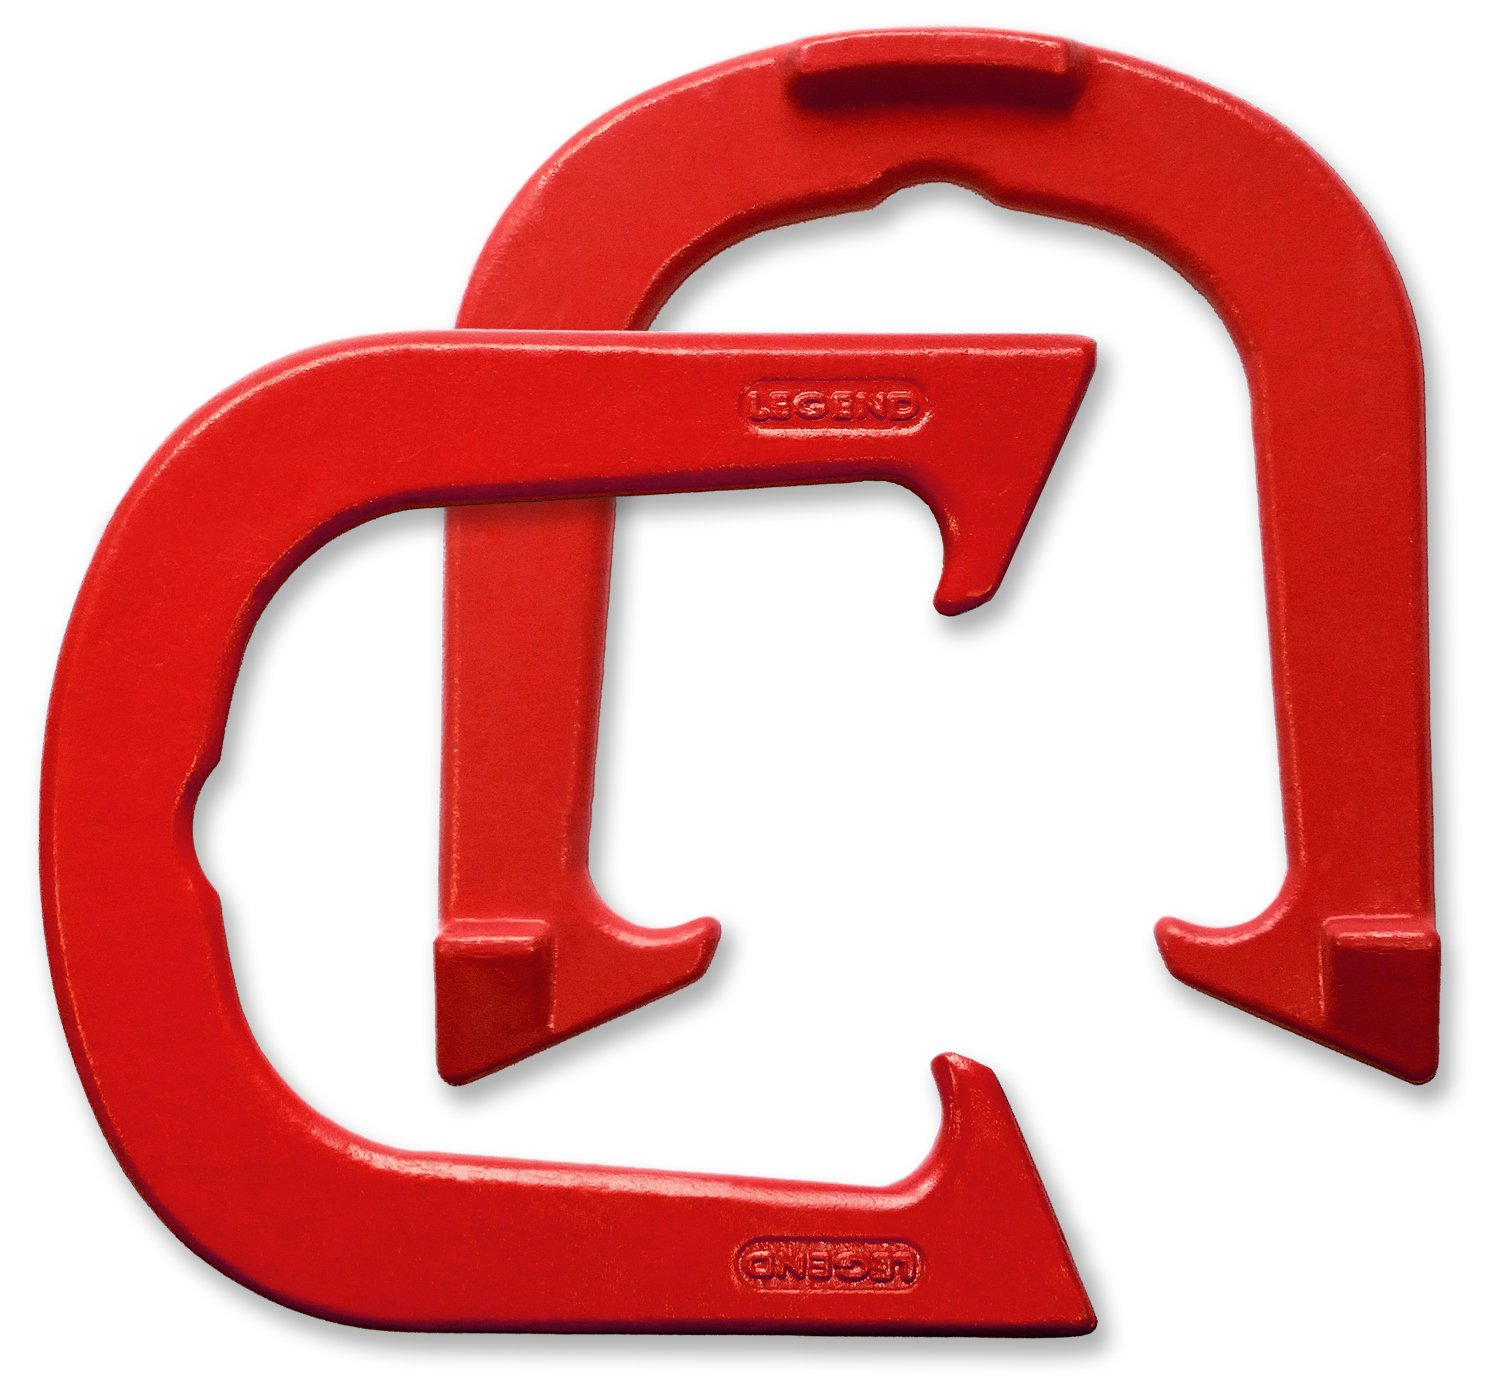 Legend Professional Pitching Horseshoes - Red Finish - NHPA Sanctioned for Tournament Play - Drop Forged Construction - One Pair (2 Shoes) - Medium Weight by Legend Horseshoes